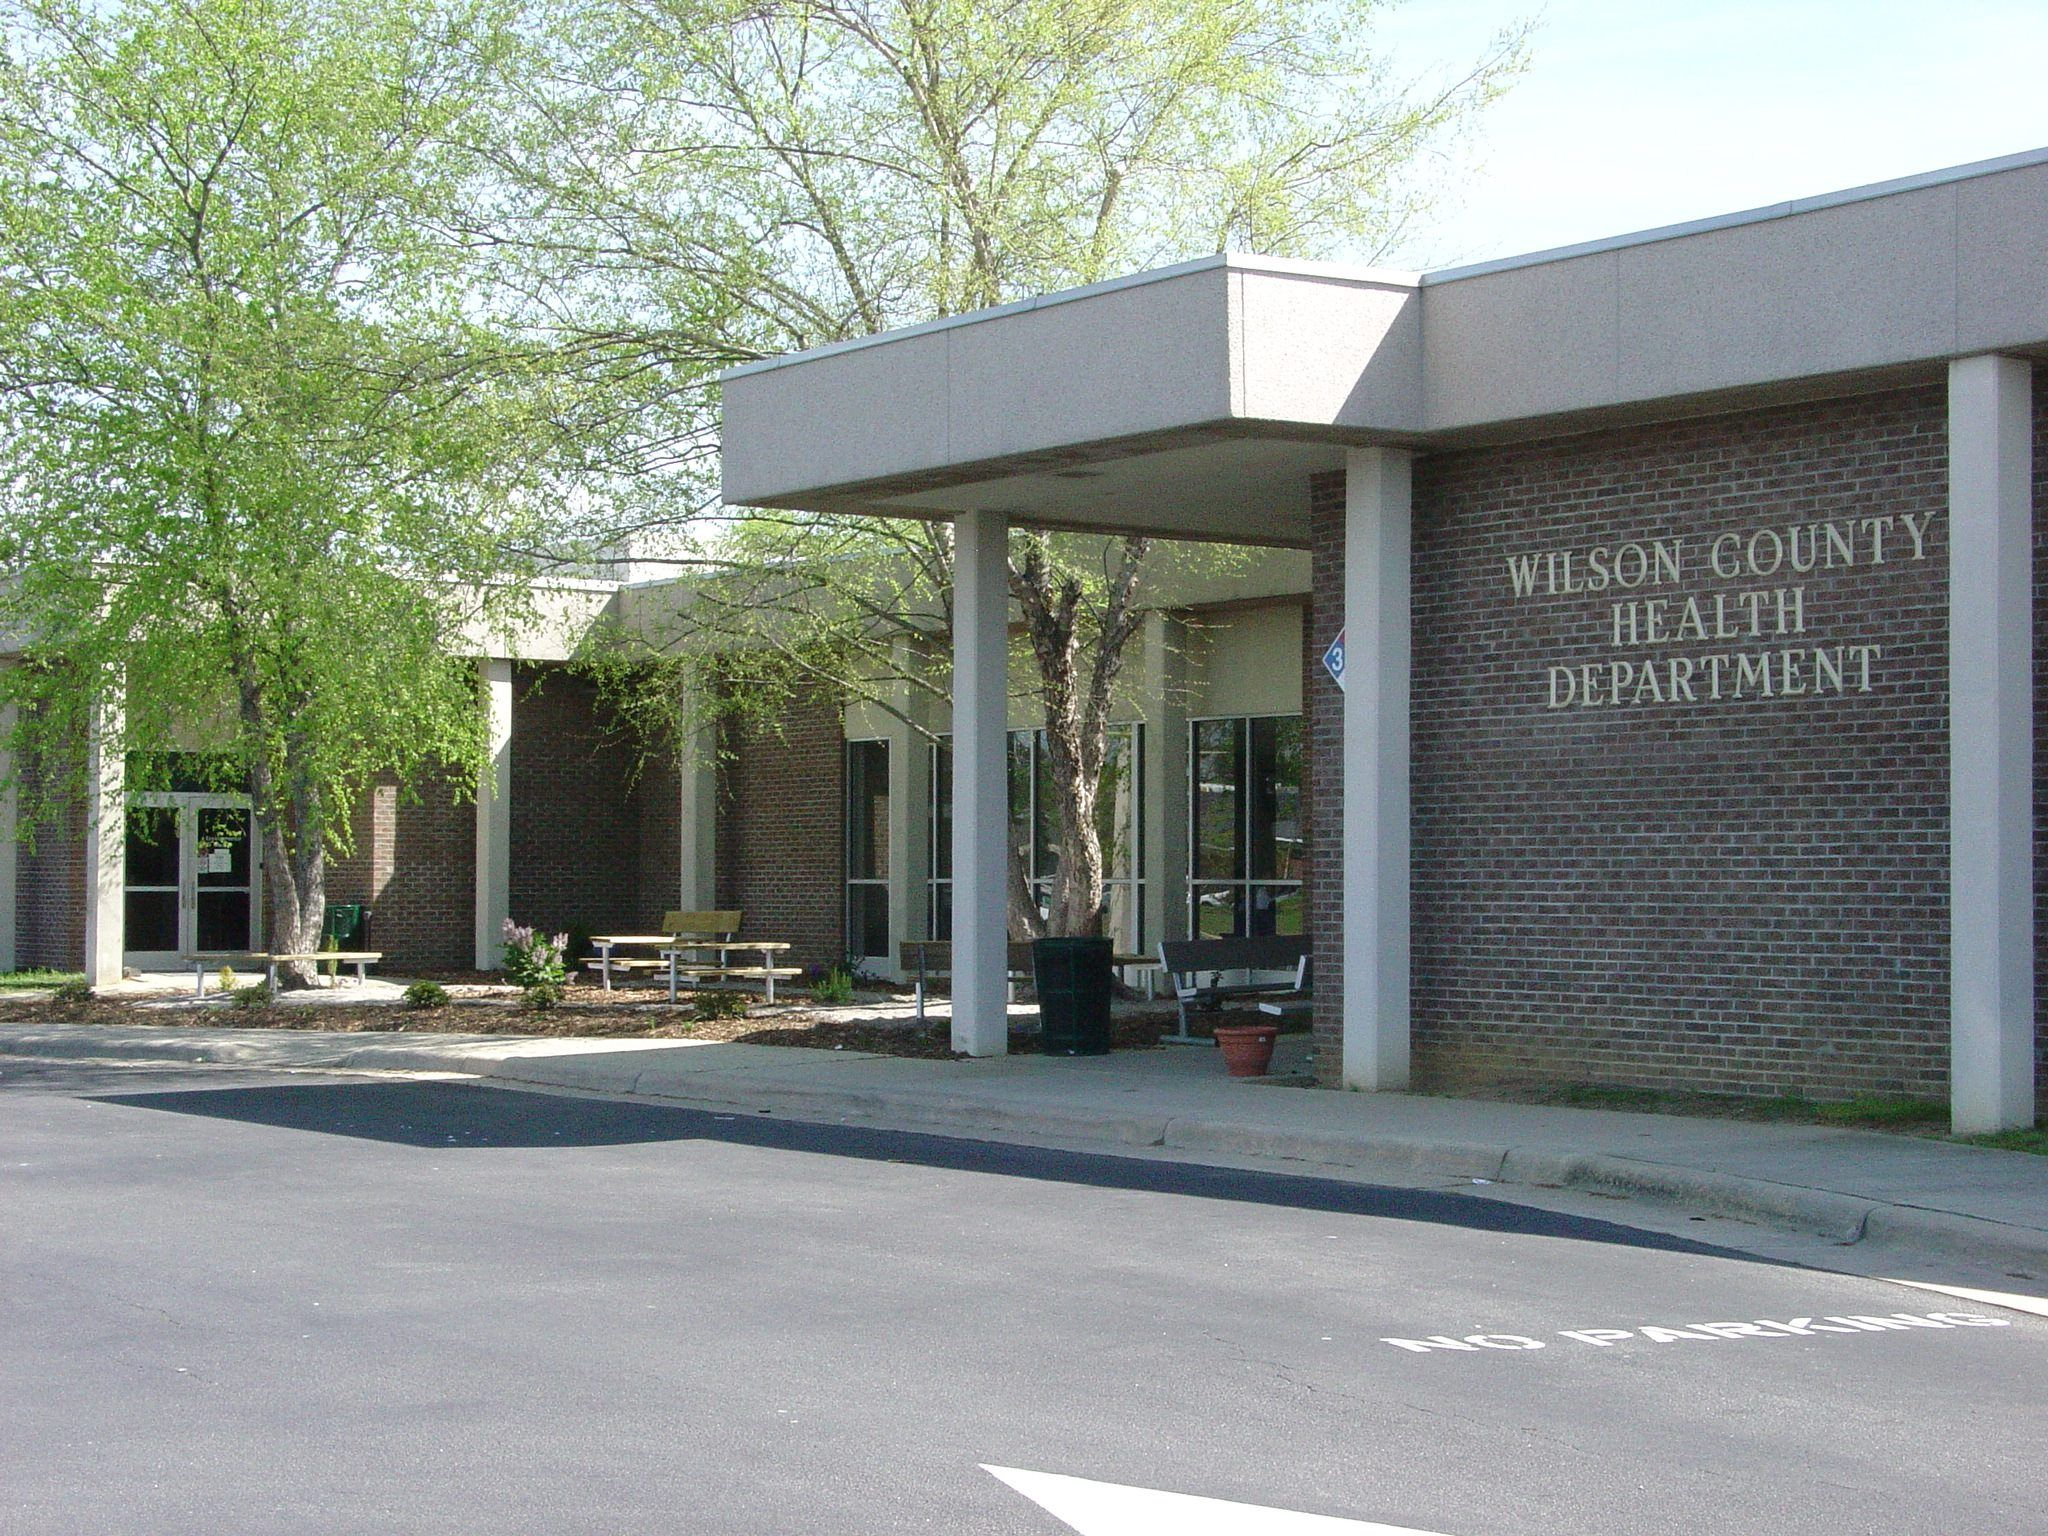 Wilson County Department of Public Health